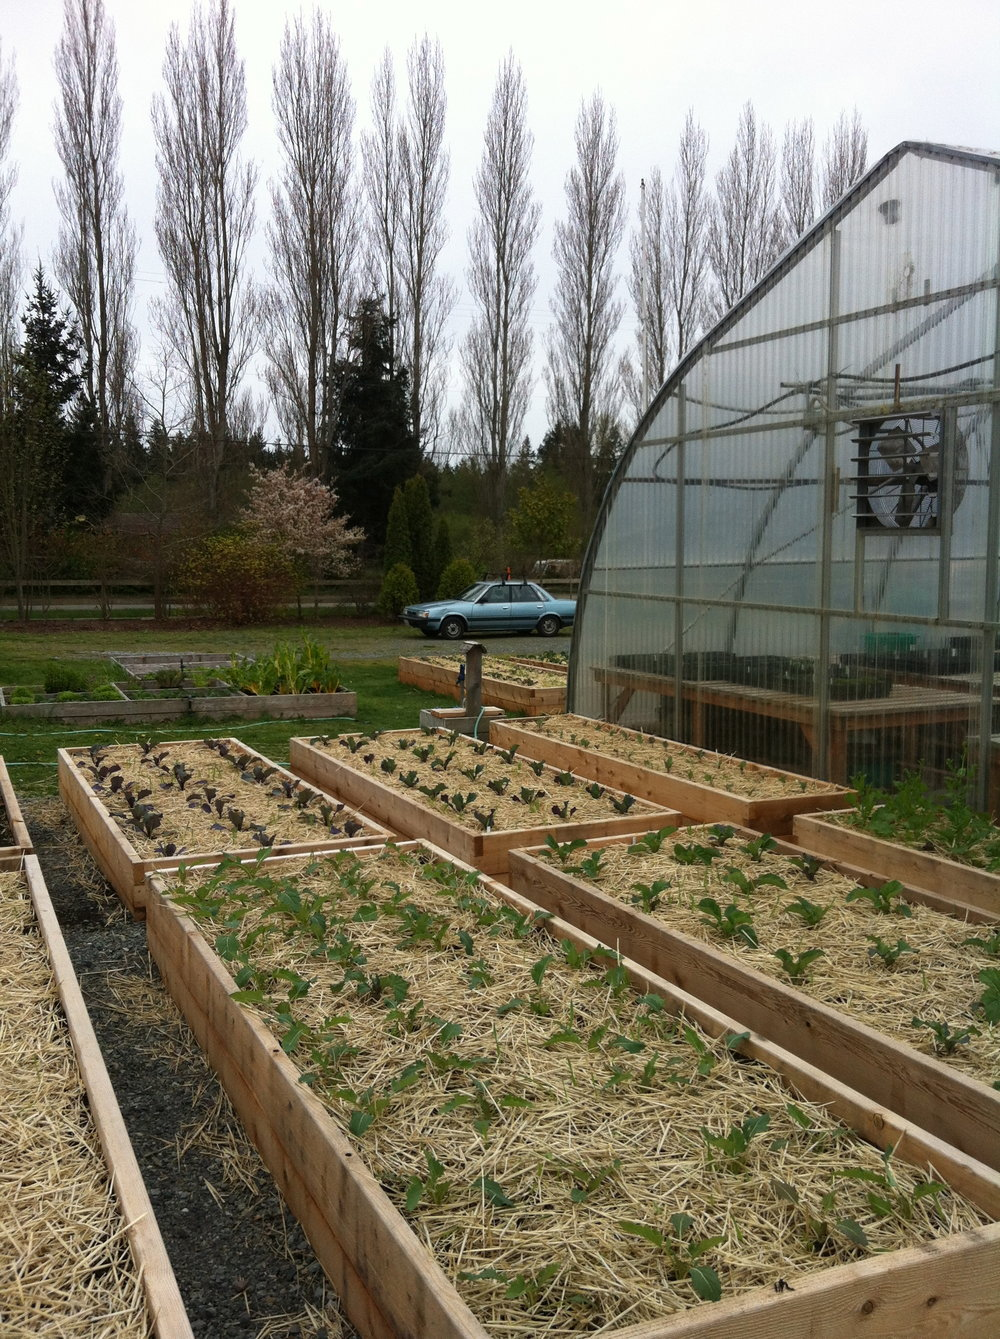 Raised beds are an efficient way to create a weed-free space for crops and feed your soil at the same time. It starts with a layer of straw to fight weeds and conserve moisture.